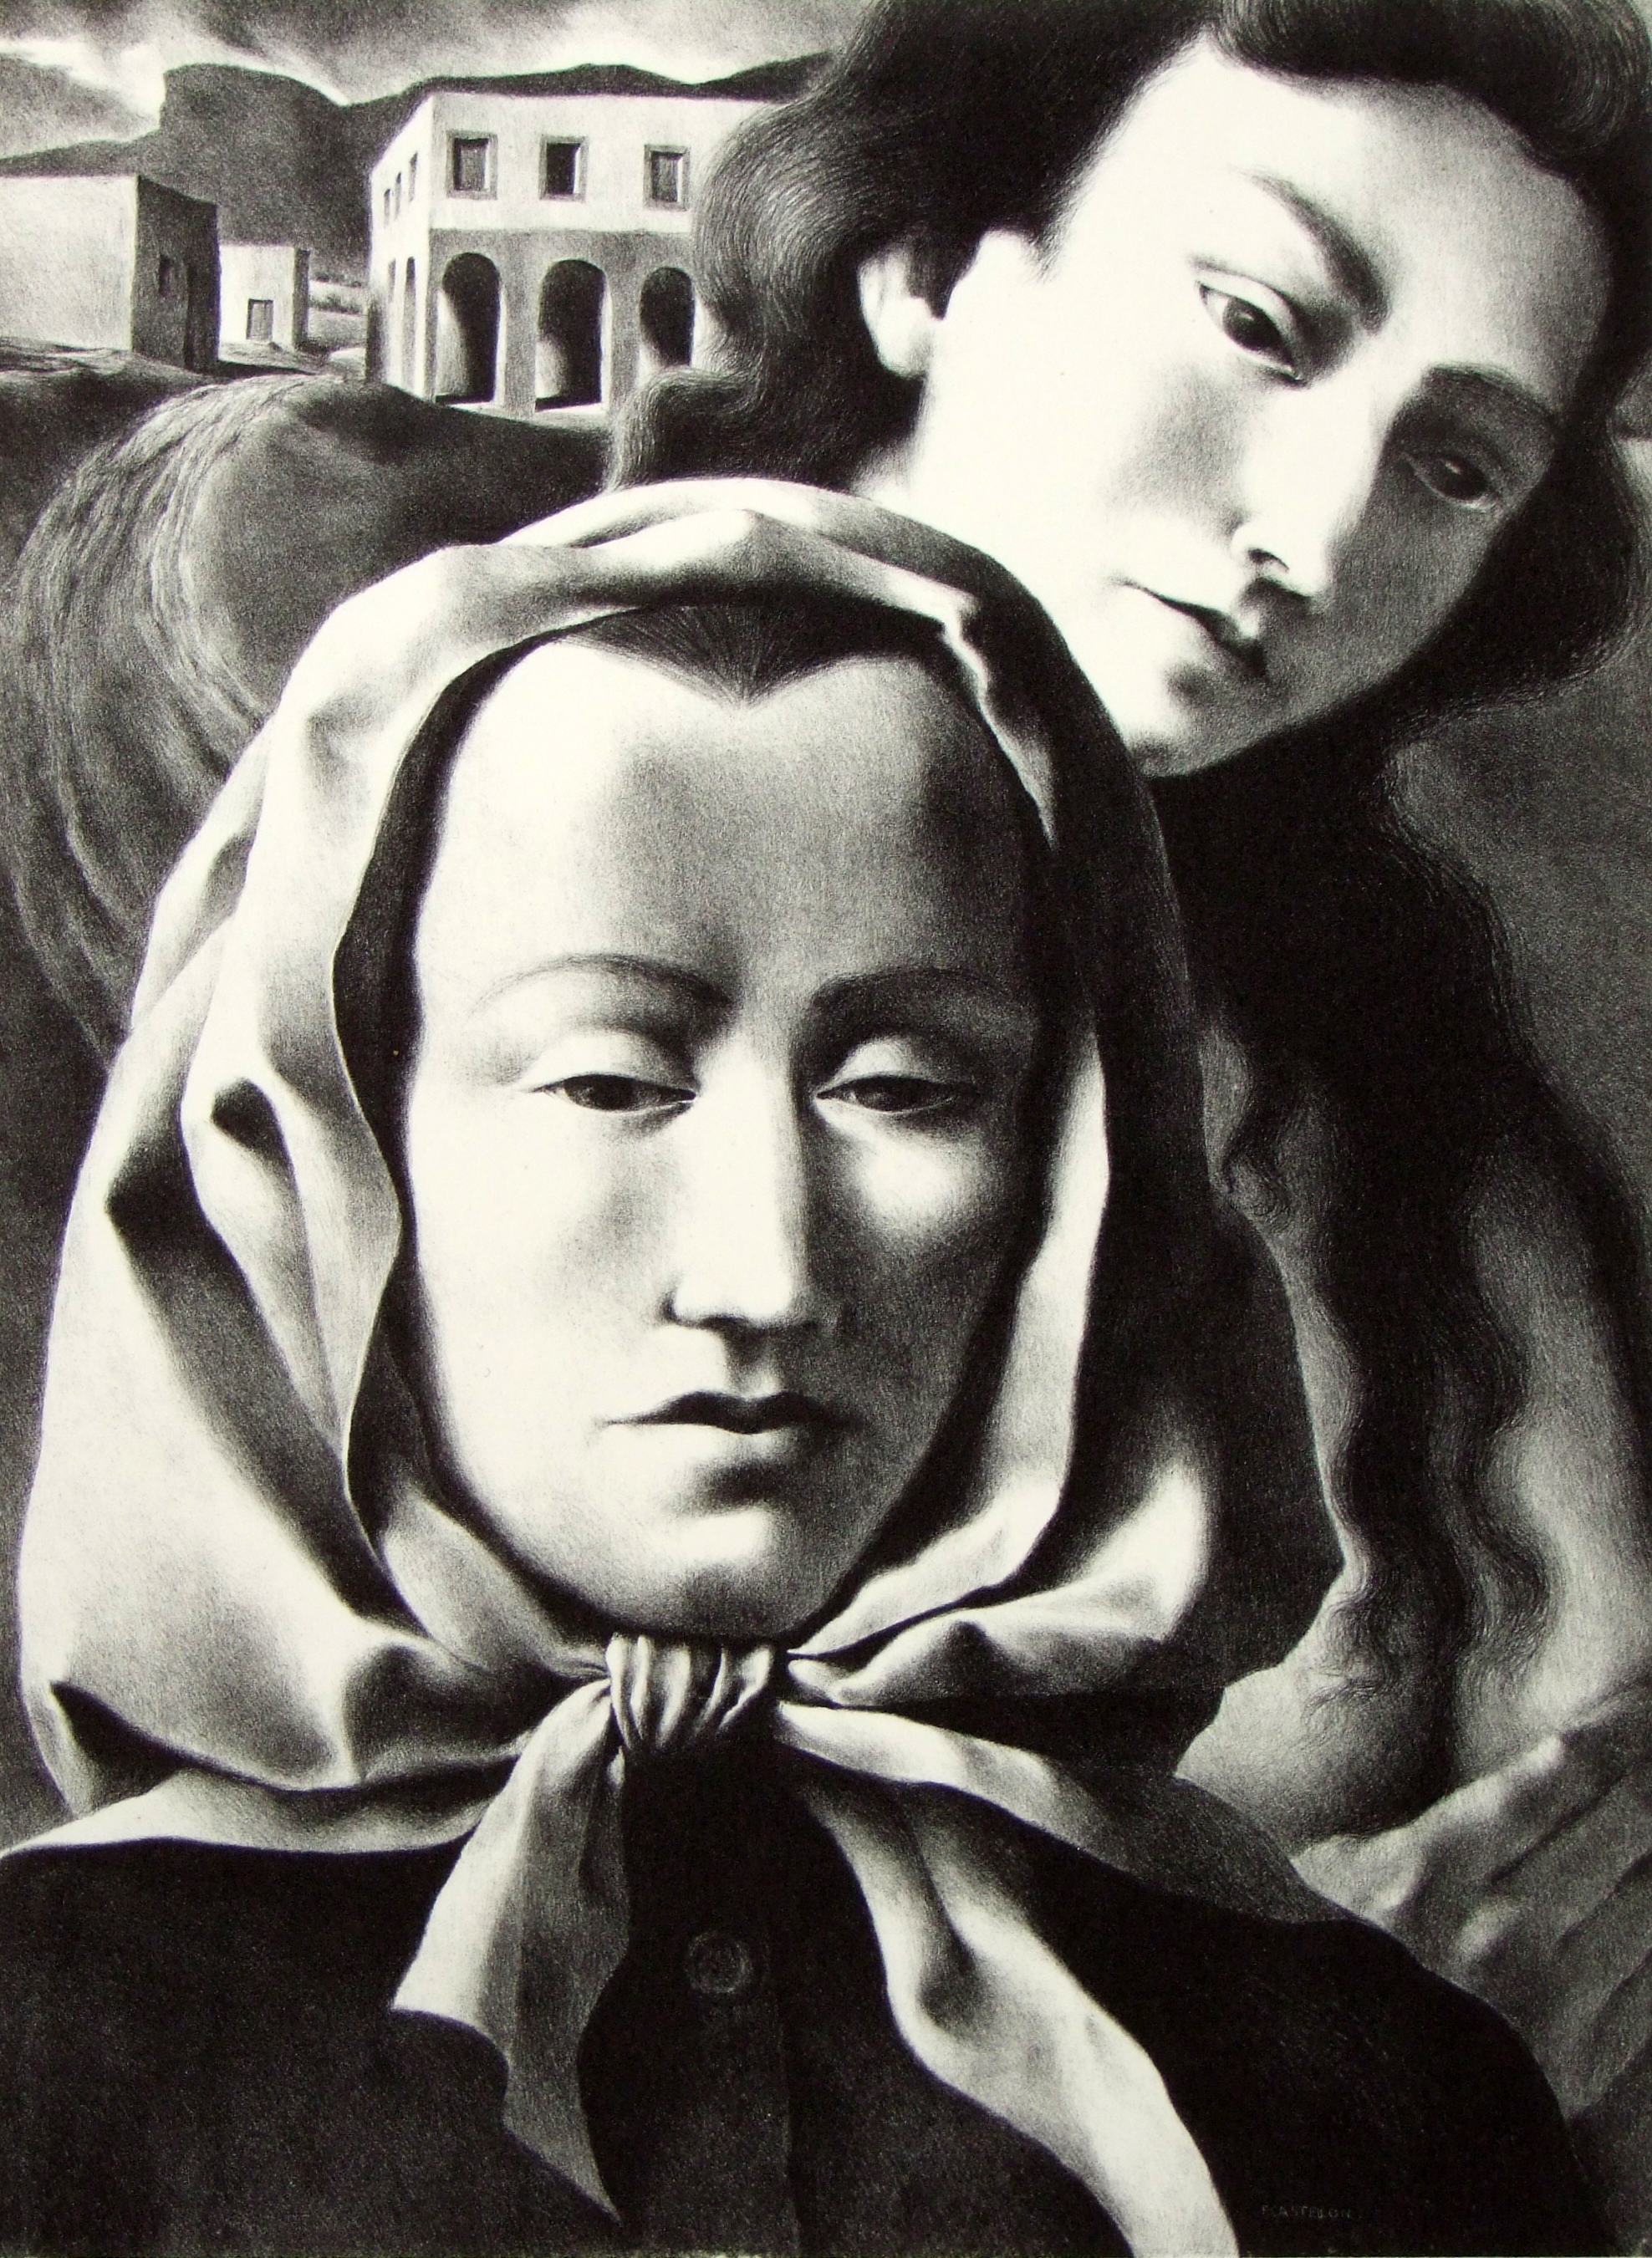 Federico Castillon | MEMORIES | lithograph on paper | 12-5/8 x 9-3/8"